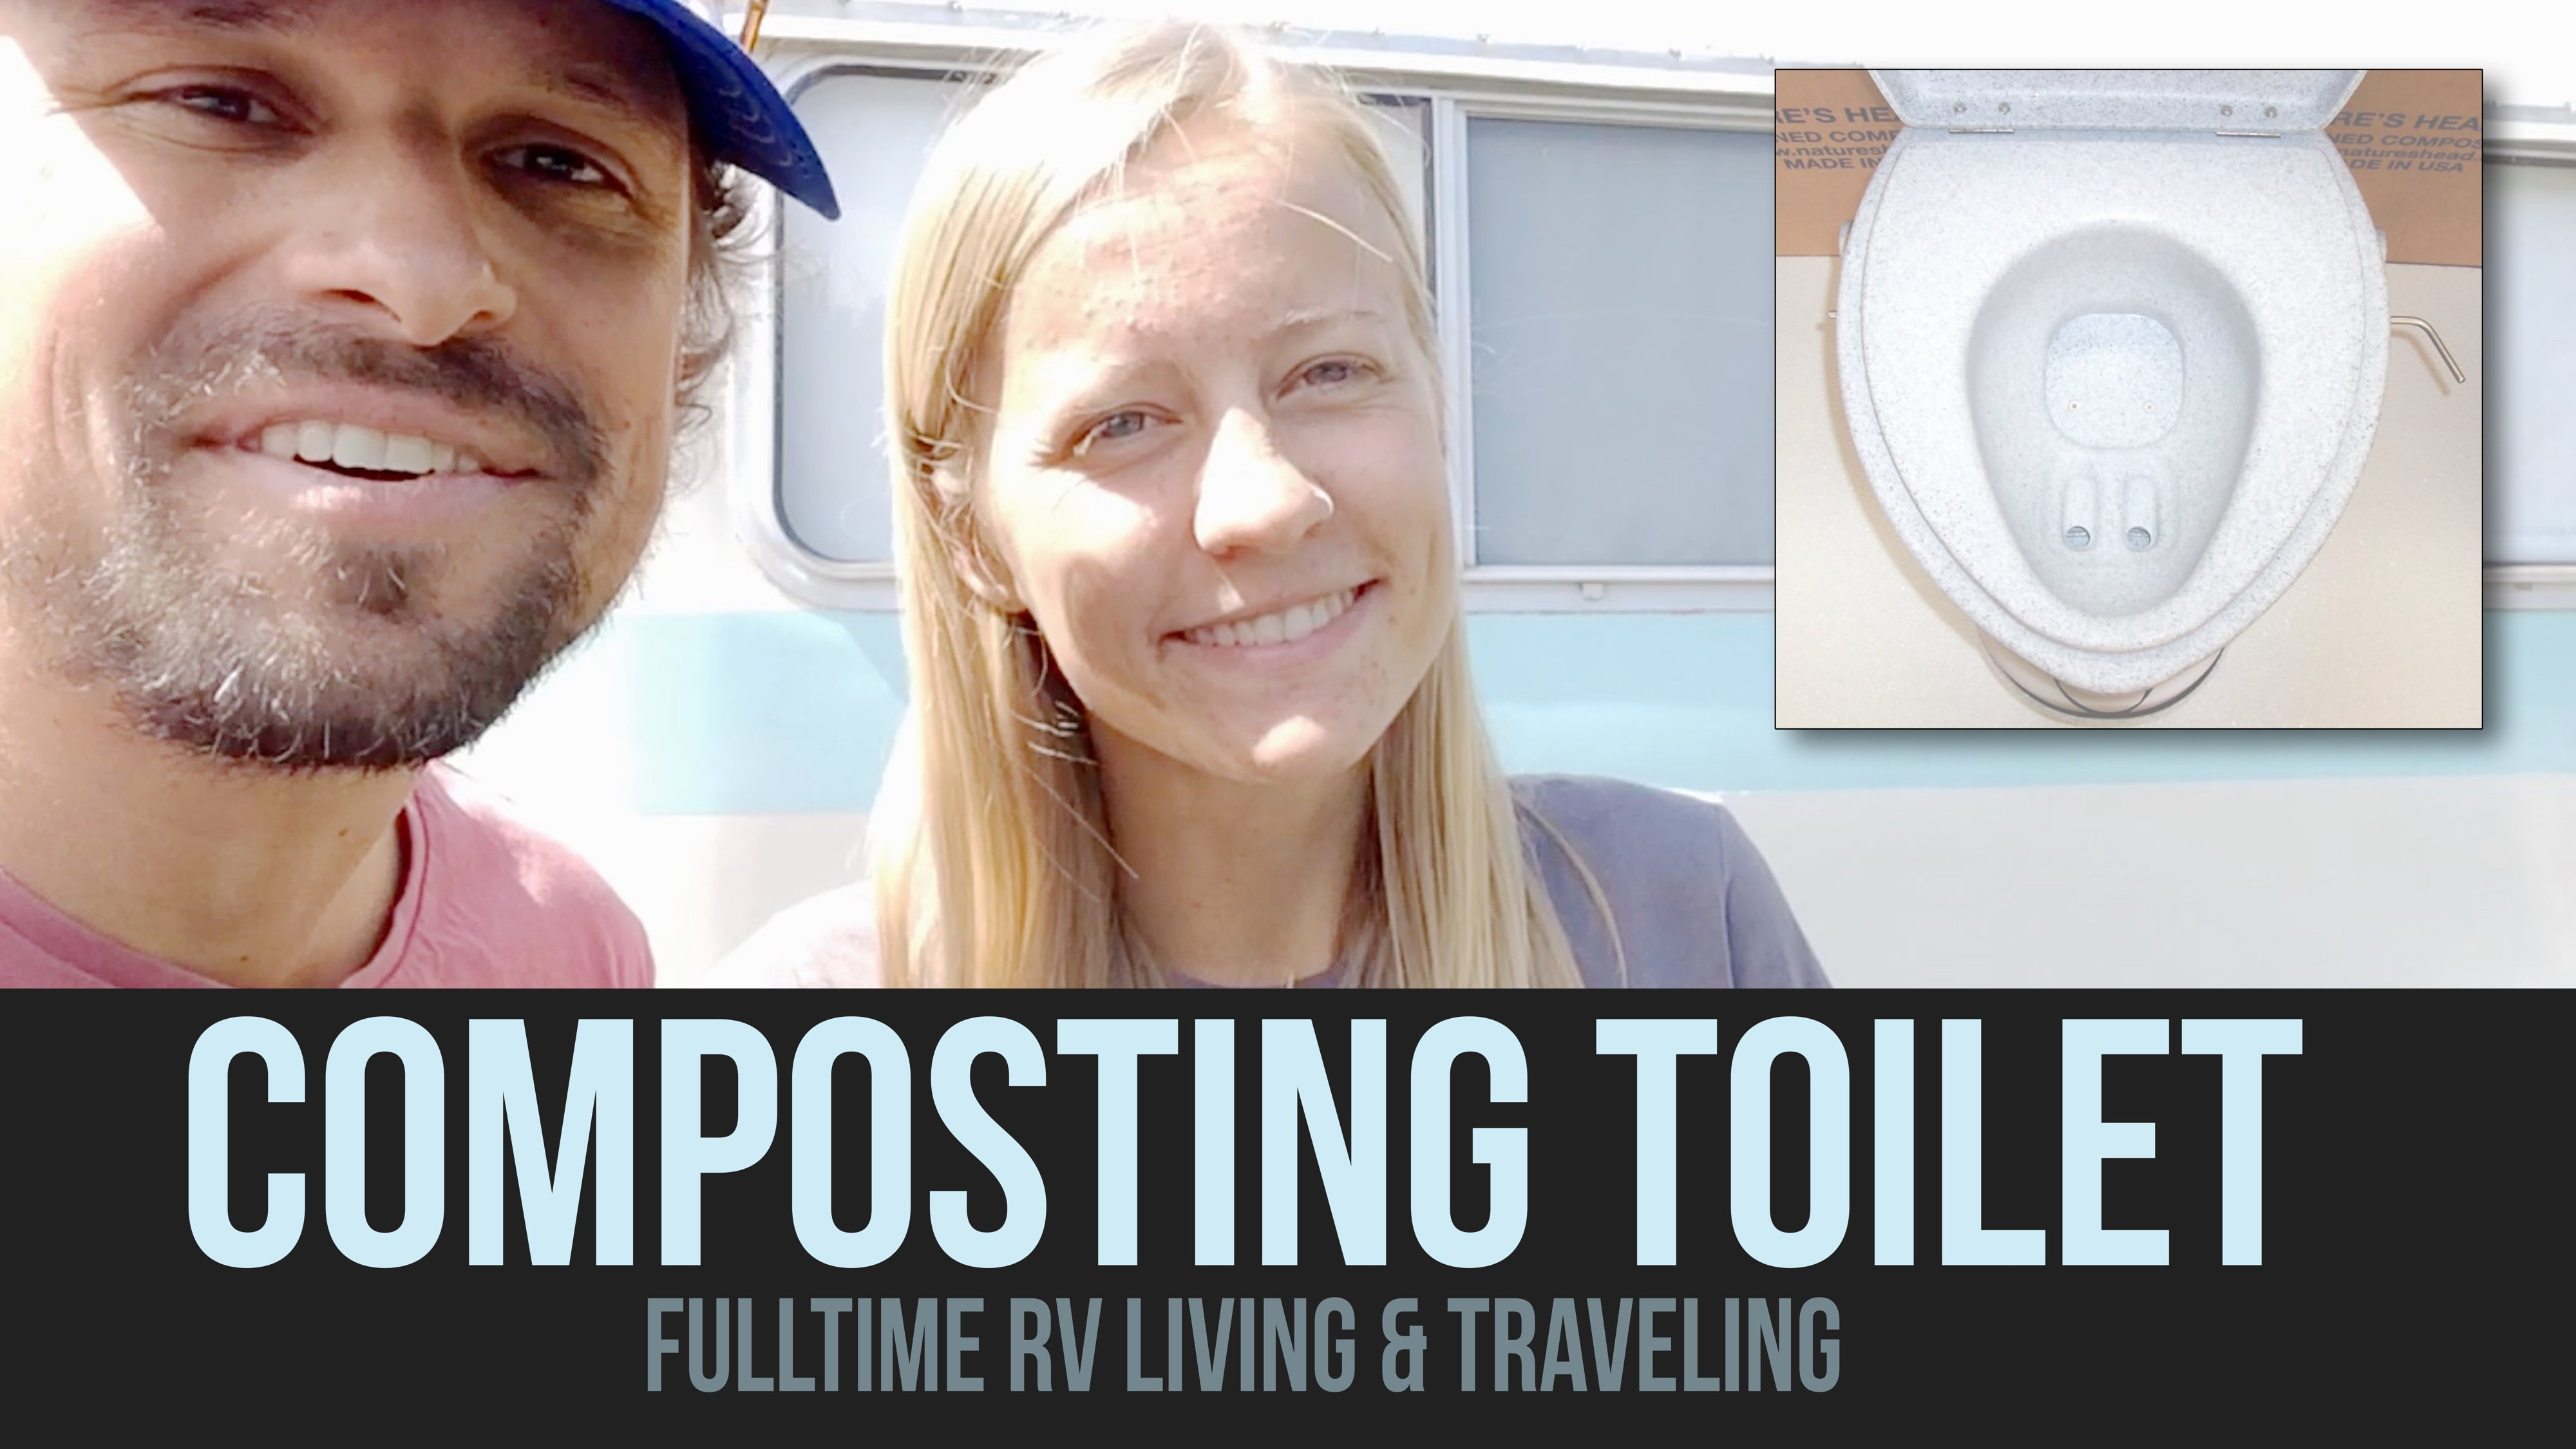 Q&A – Composting Toilet for an RV